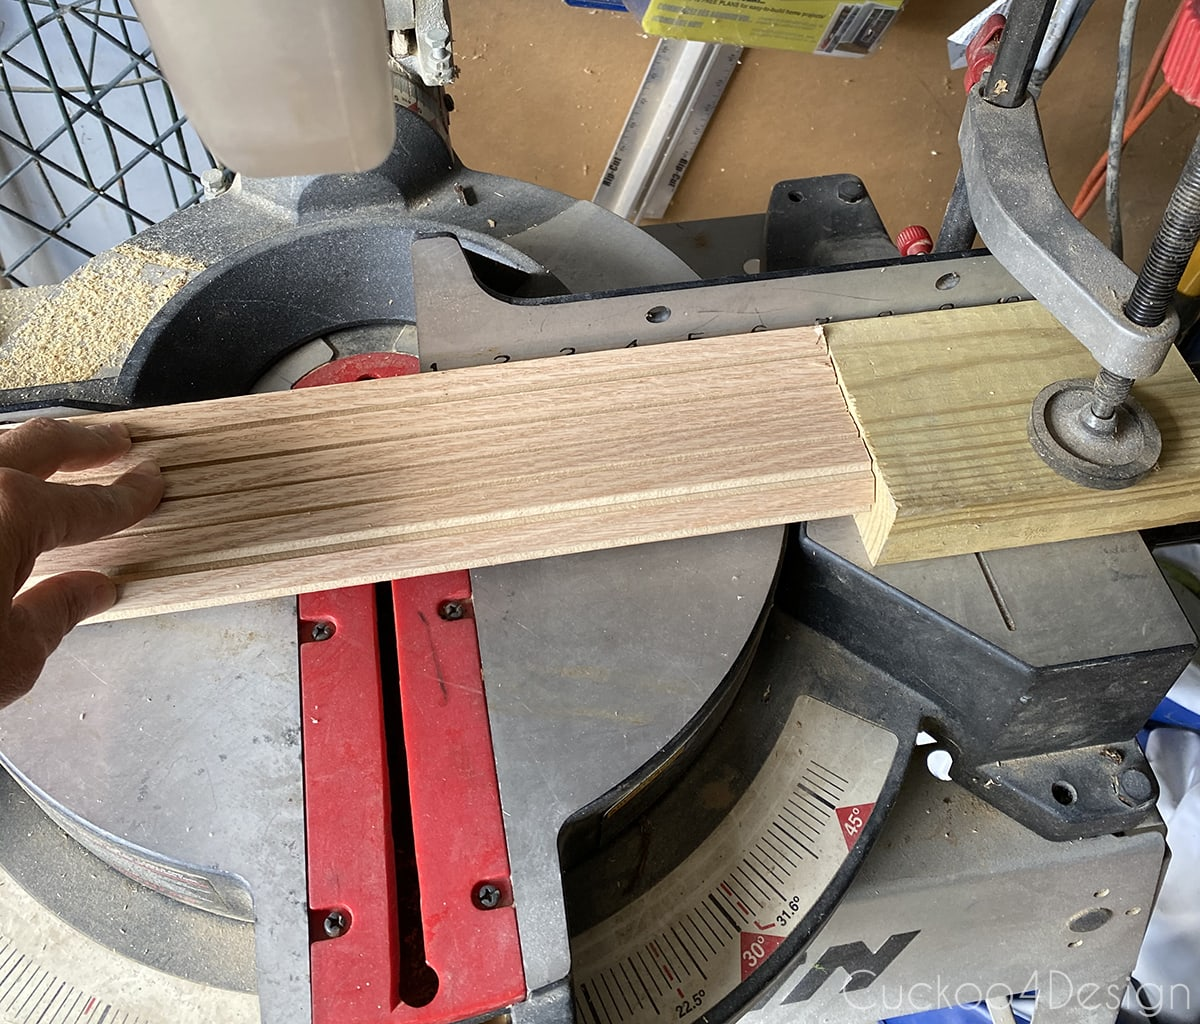 clamped piece of wood on miter saw for even length cutting